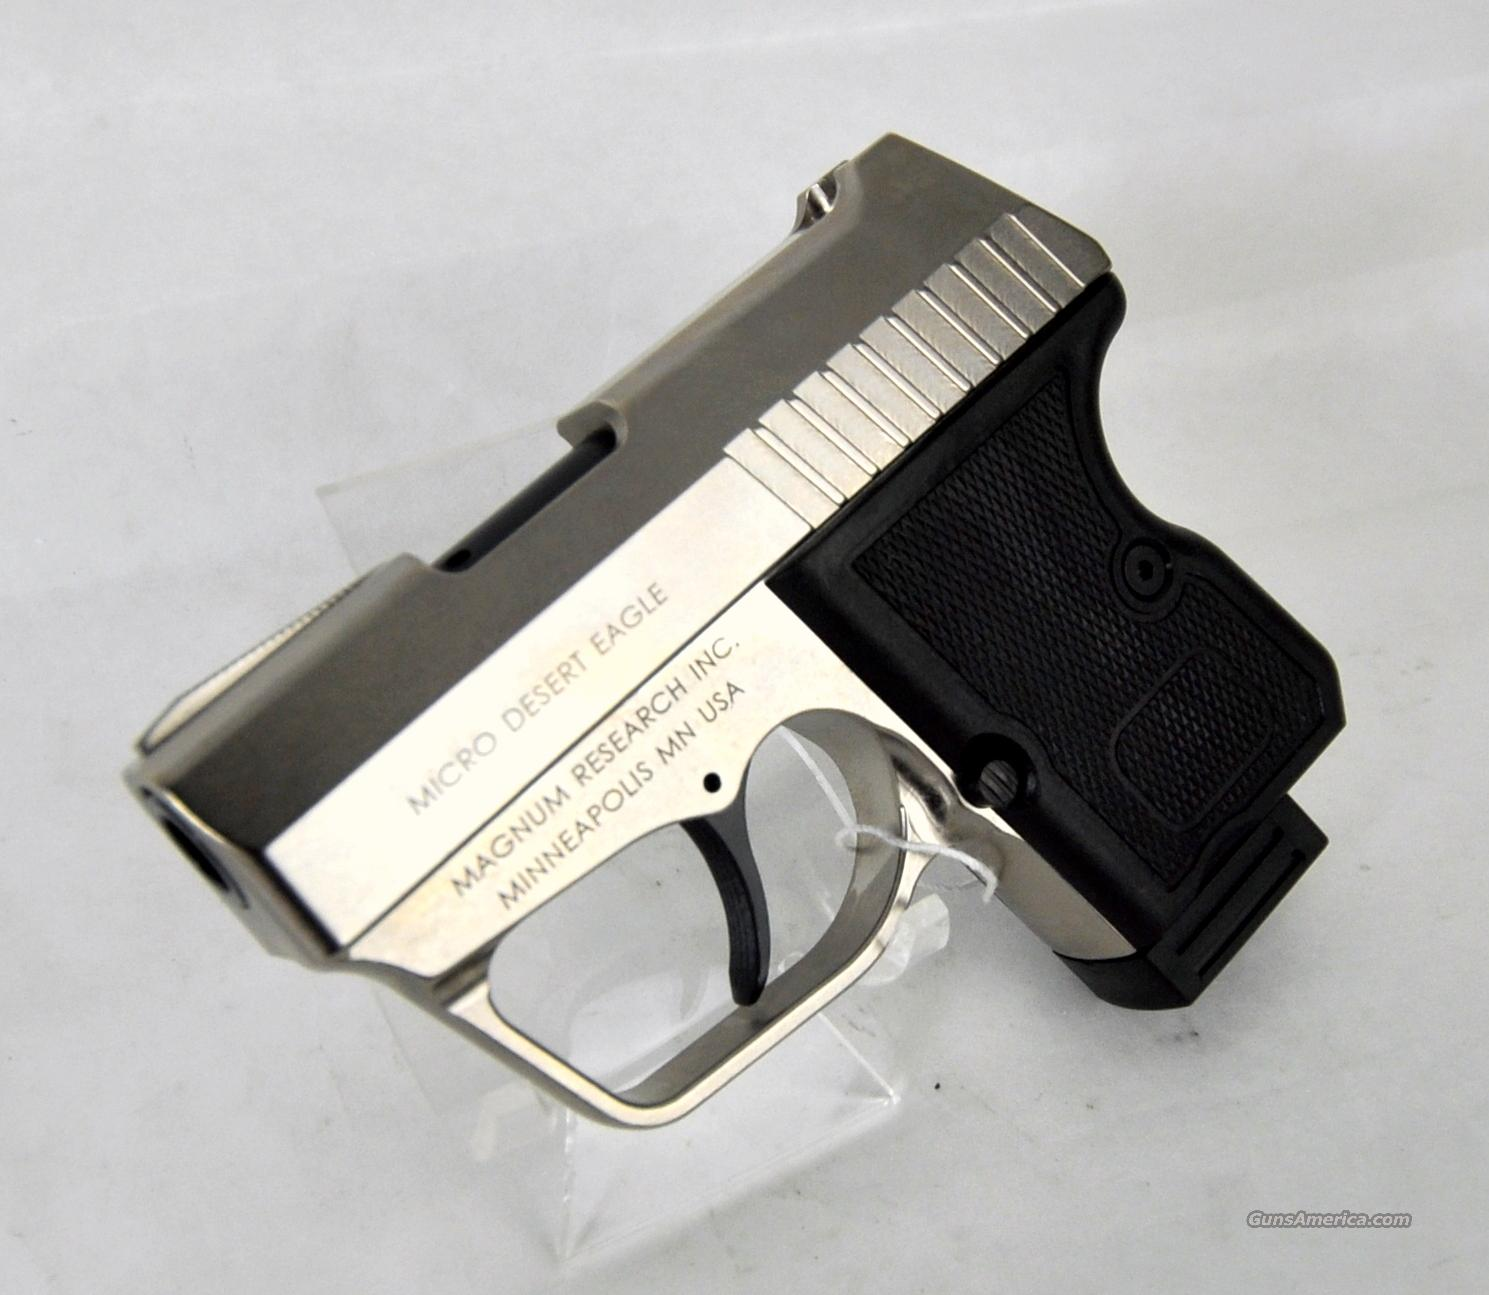 Magnum Reaserch Micro Desert Eagle 380  Guns > Pistols > Magnum Research Pistols